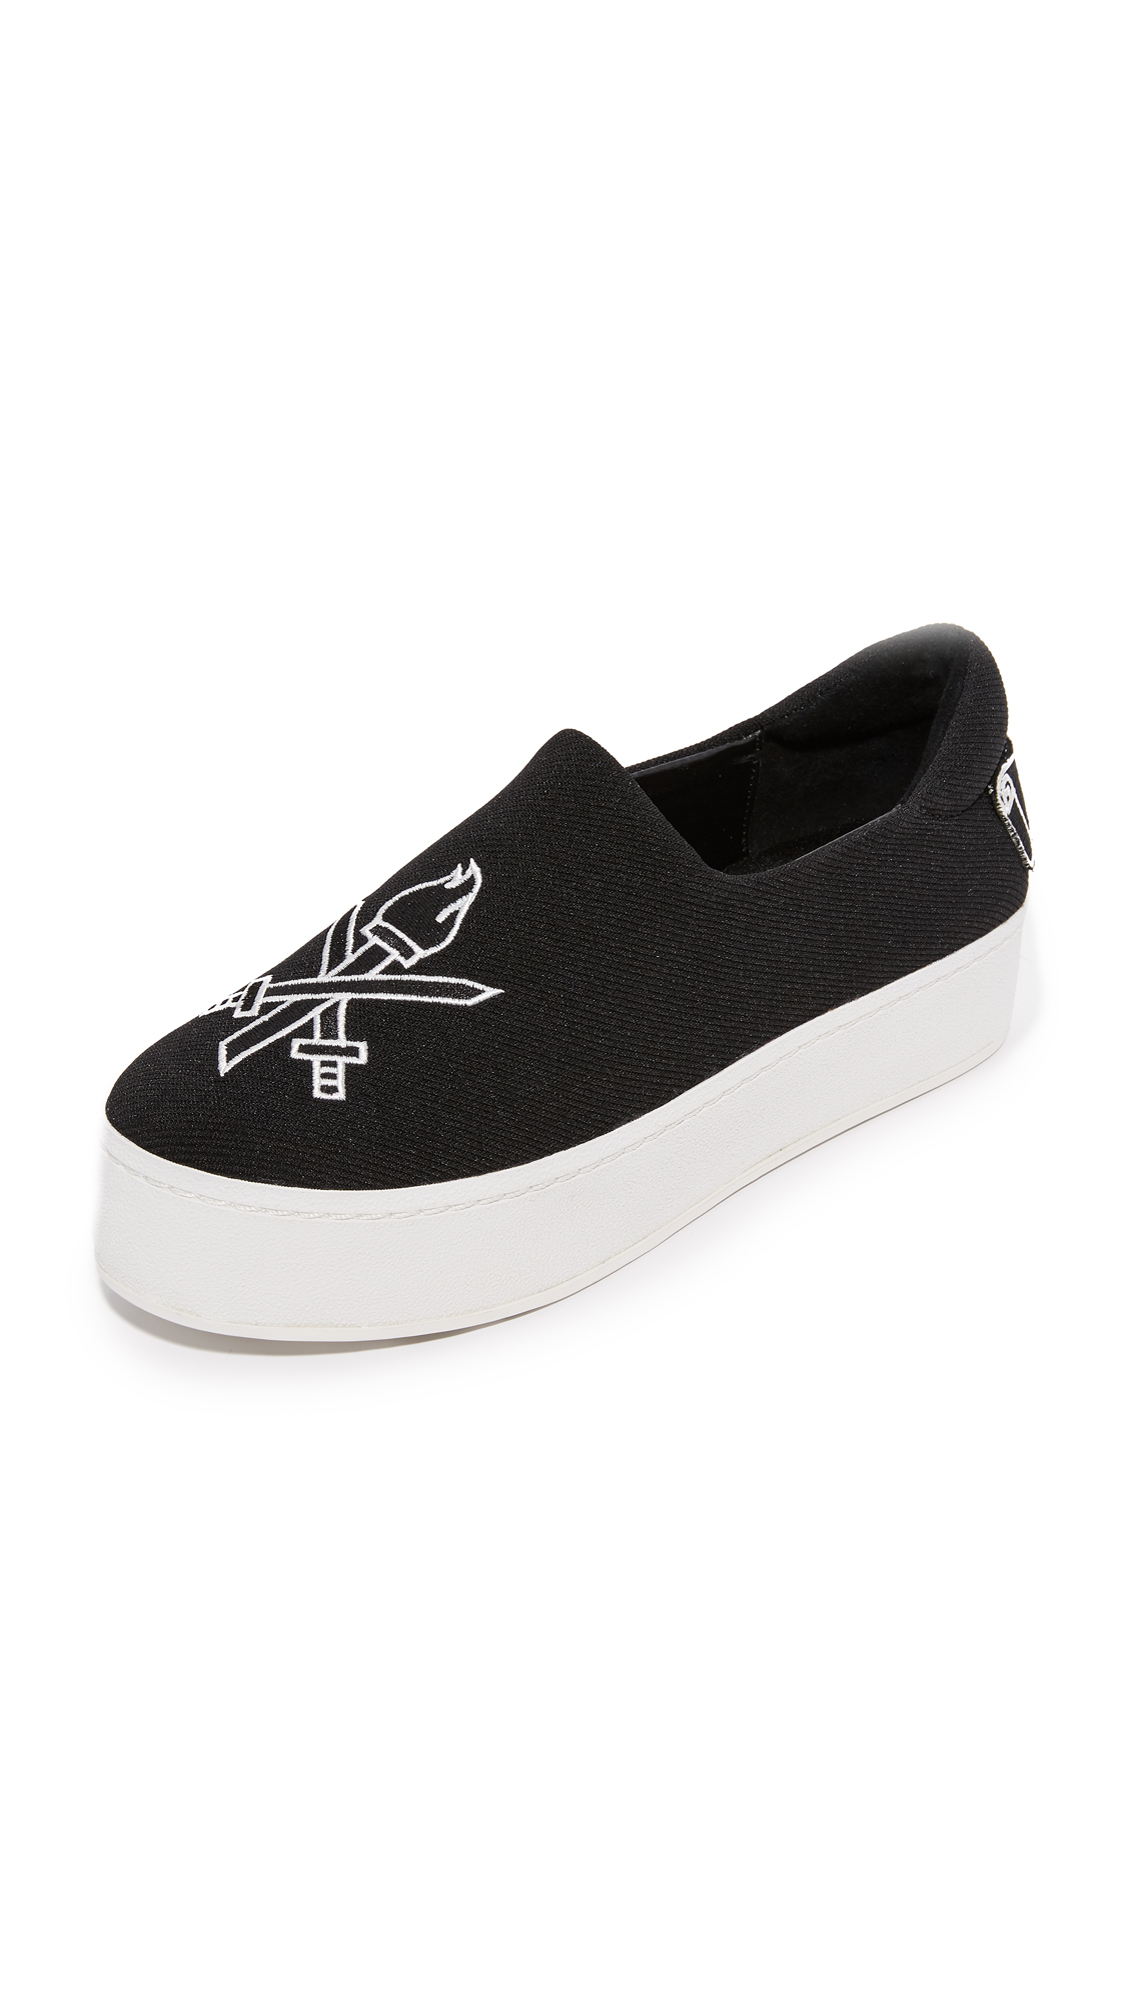 Photo of Opening Ceremony Cici Varsity Slip On Sneakers Black - Opening Ceremony online